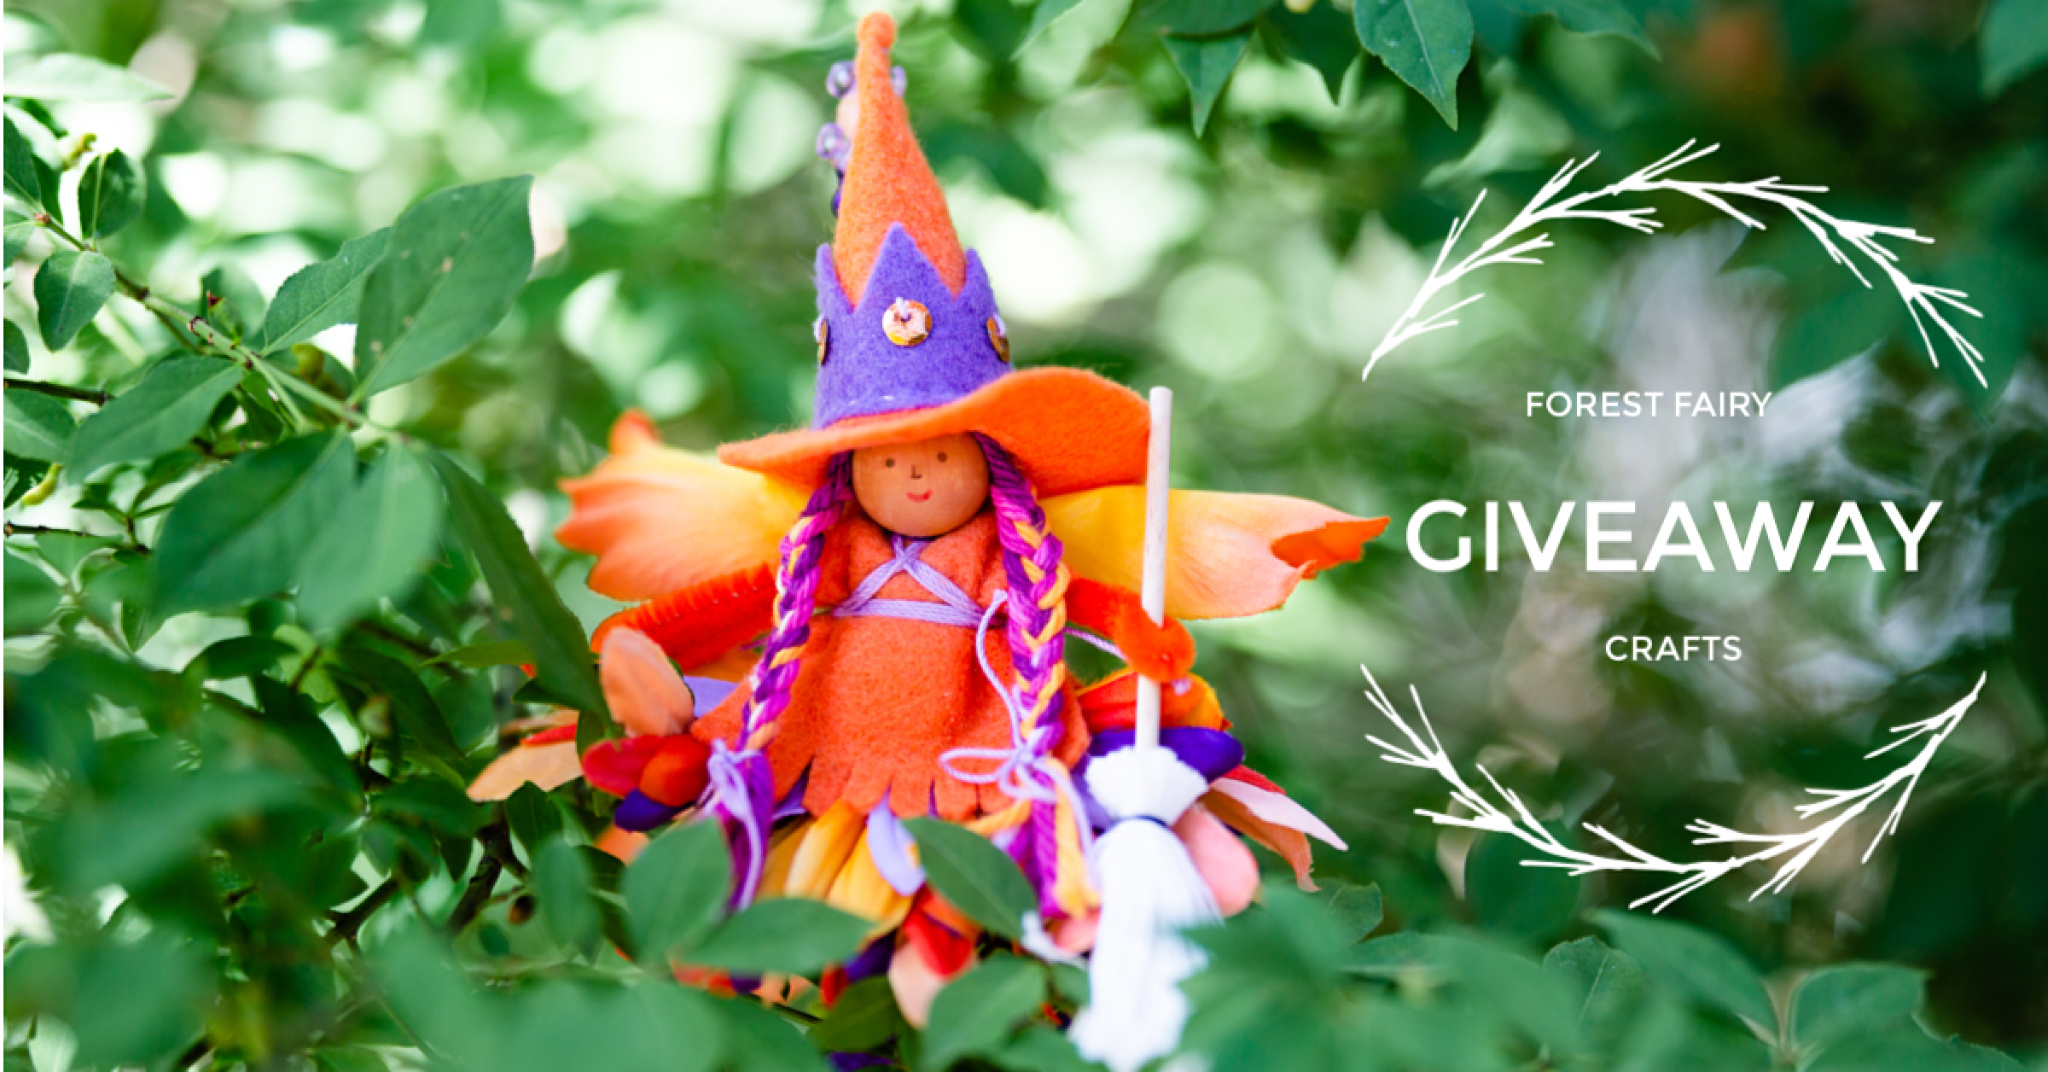 Forest Fairy Crafts Witch | Fairy doll made by Lenka Vodicka